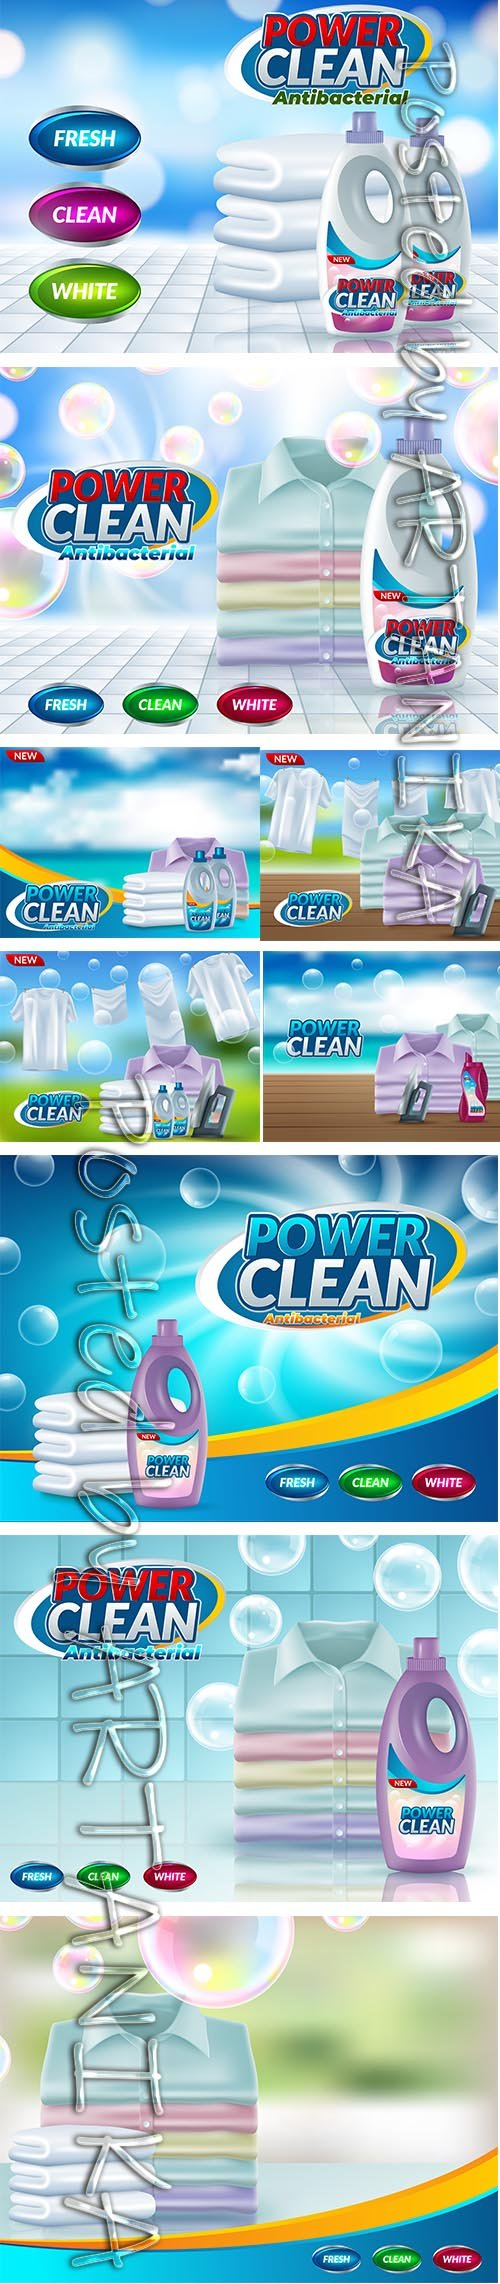 Set of Powder Laundry Detergent Advertising Backgrounds